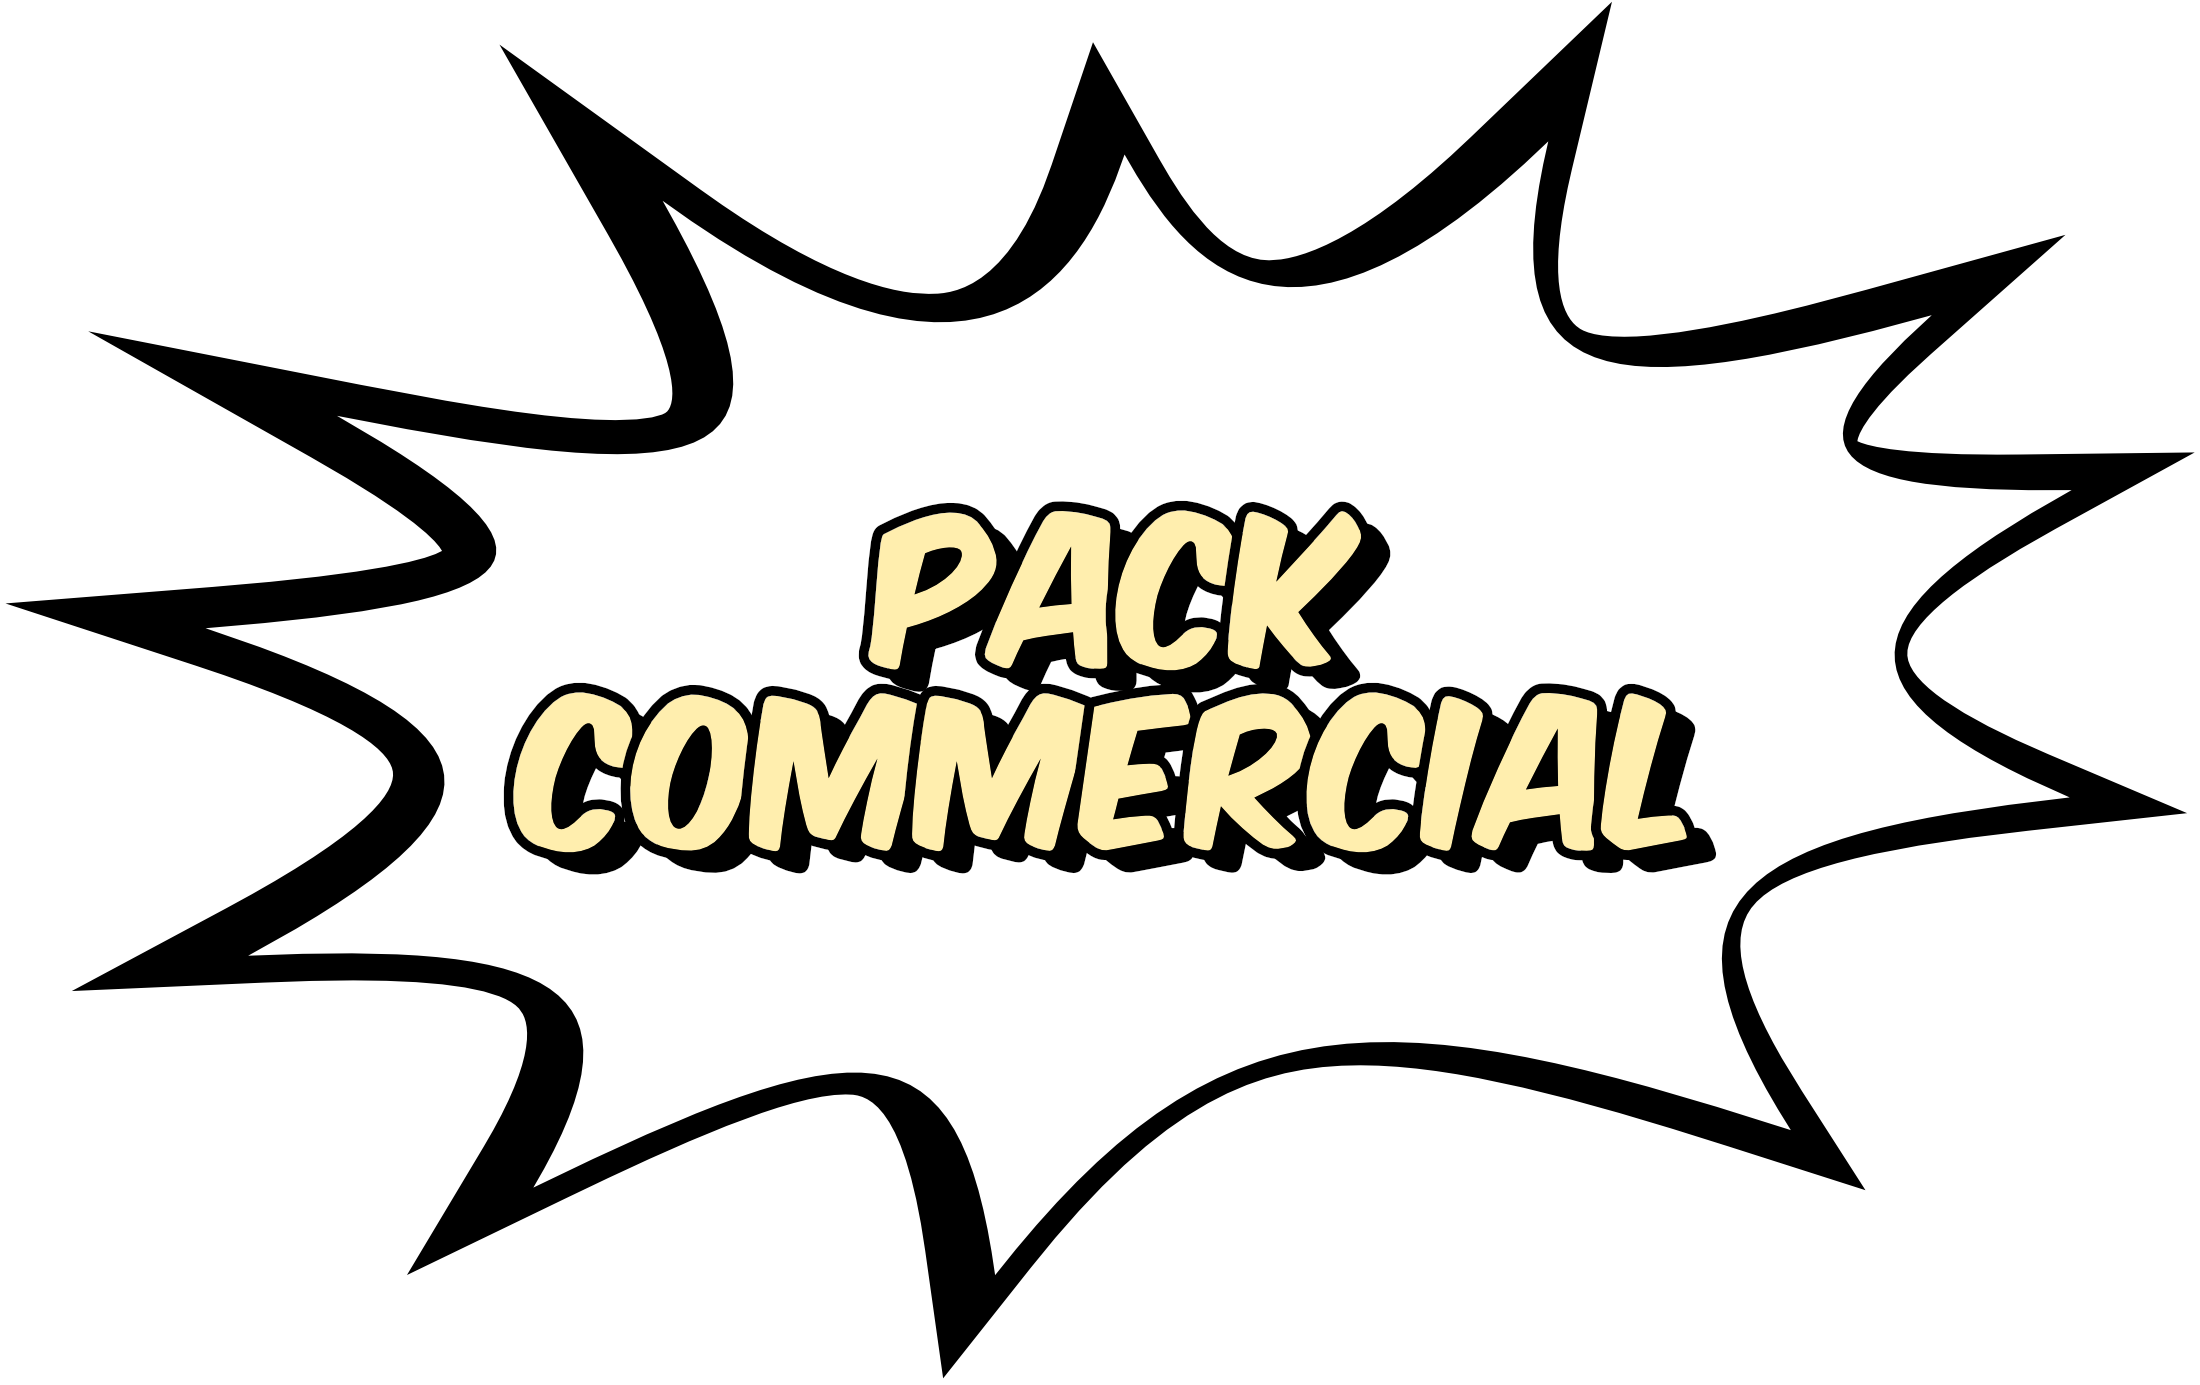 pack commercial